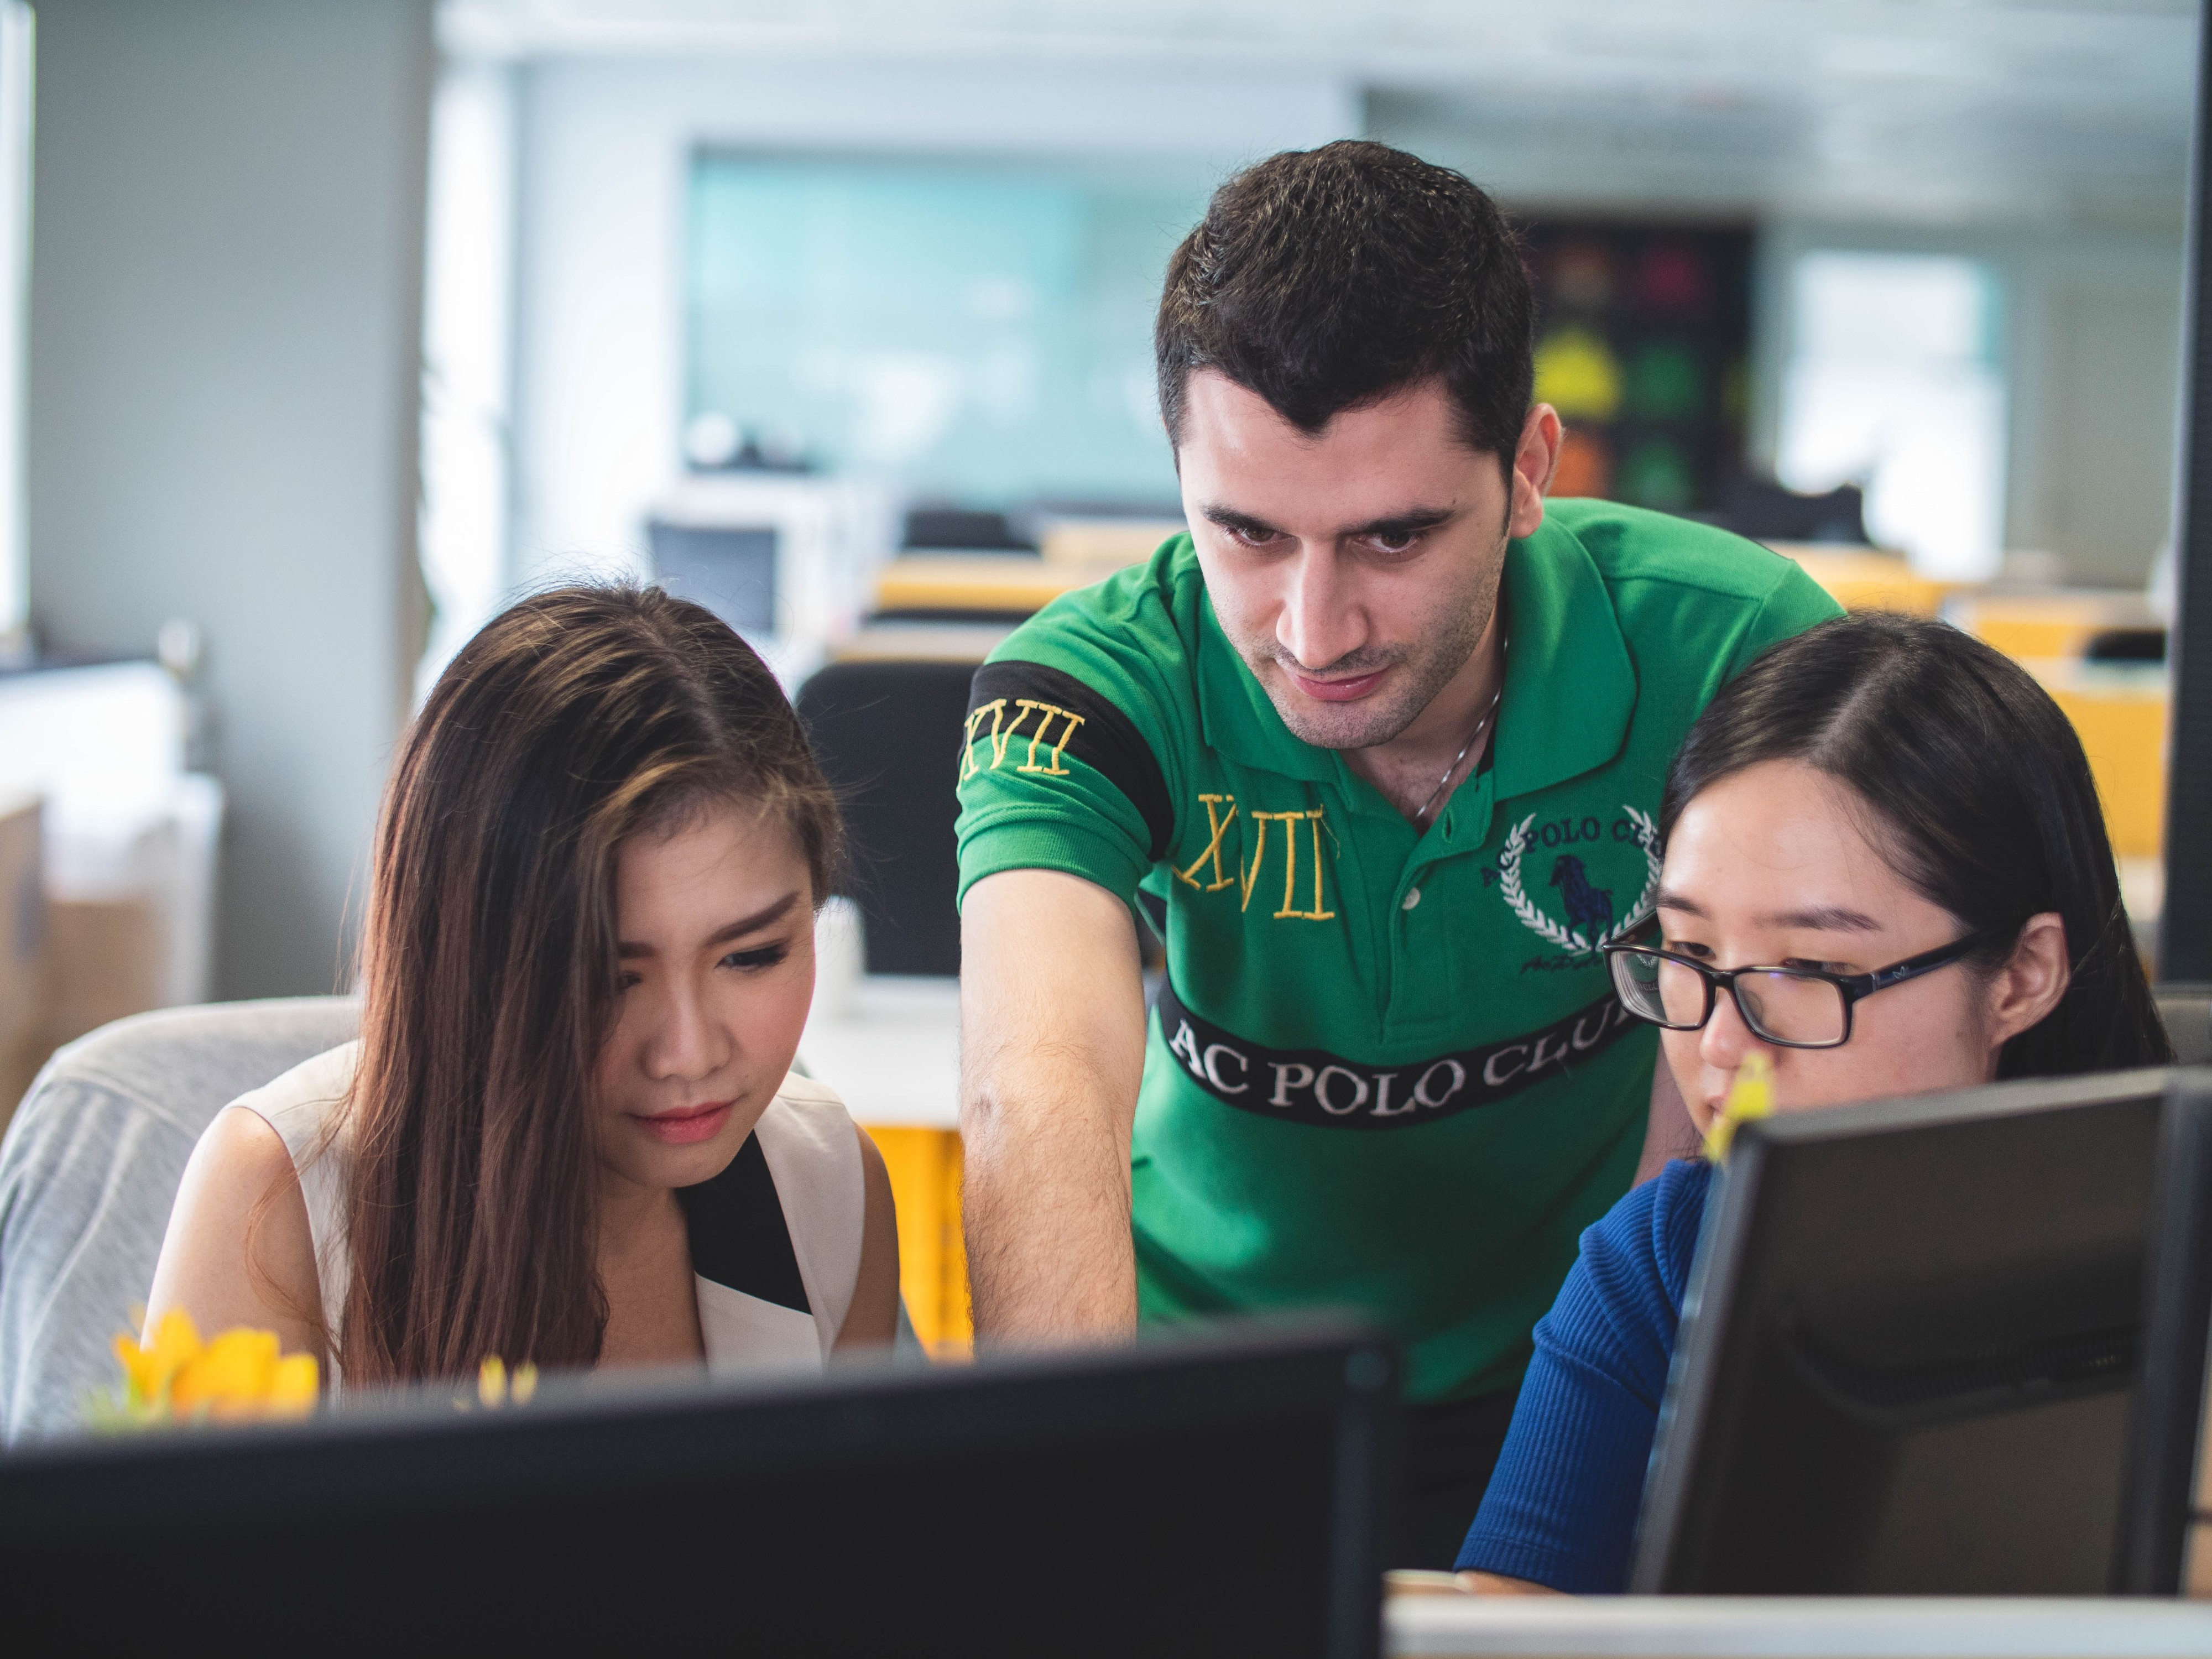 A man explaining something to two Asian girls in front of a computer